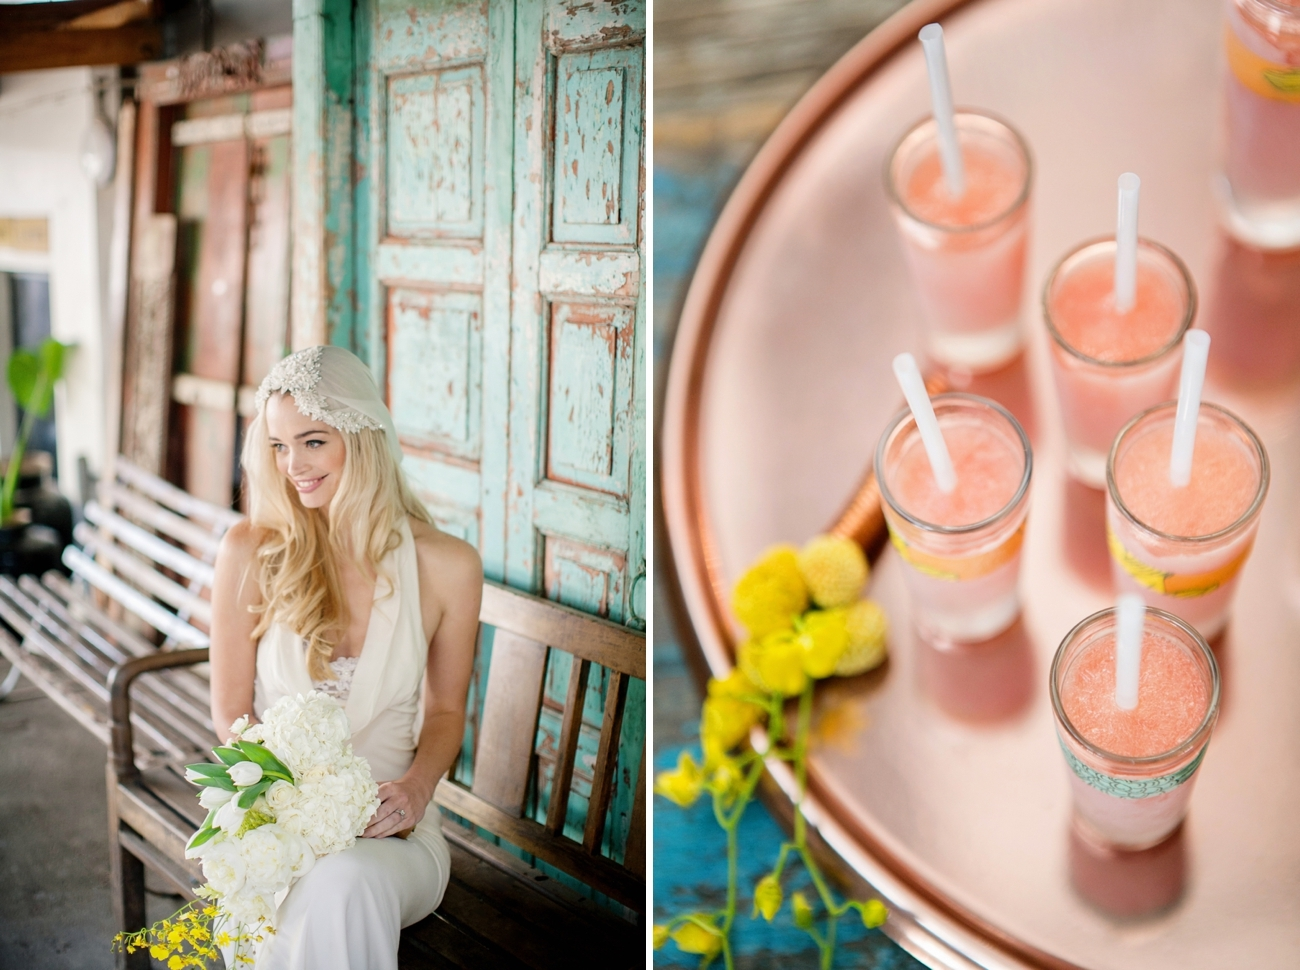 Summer Brights Wedding Inspiration | Credit: Wedding Concepts & Tyme Photography